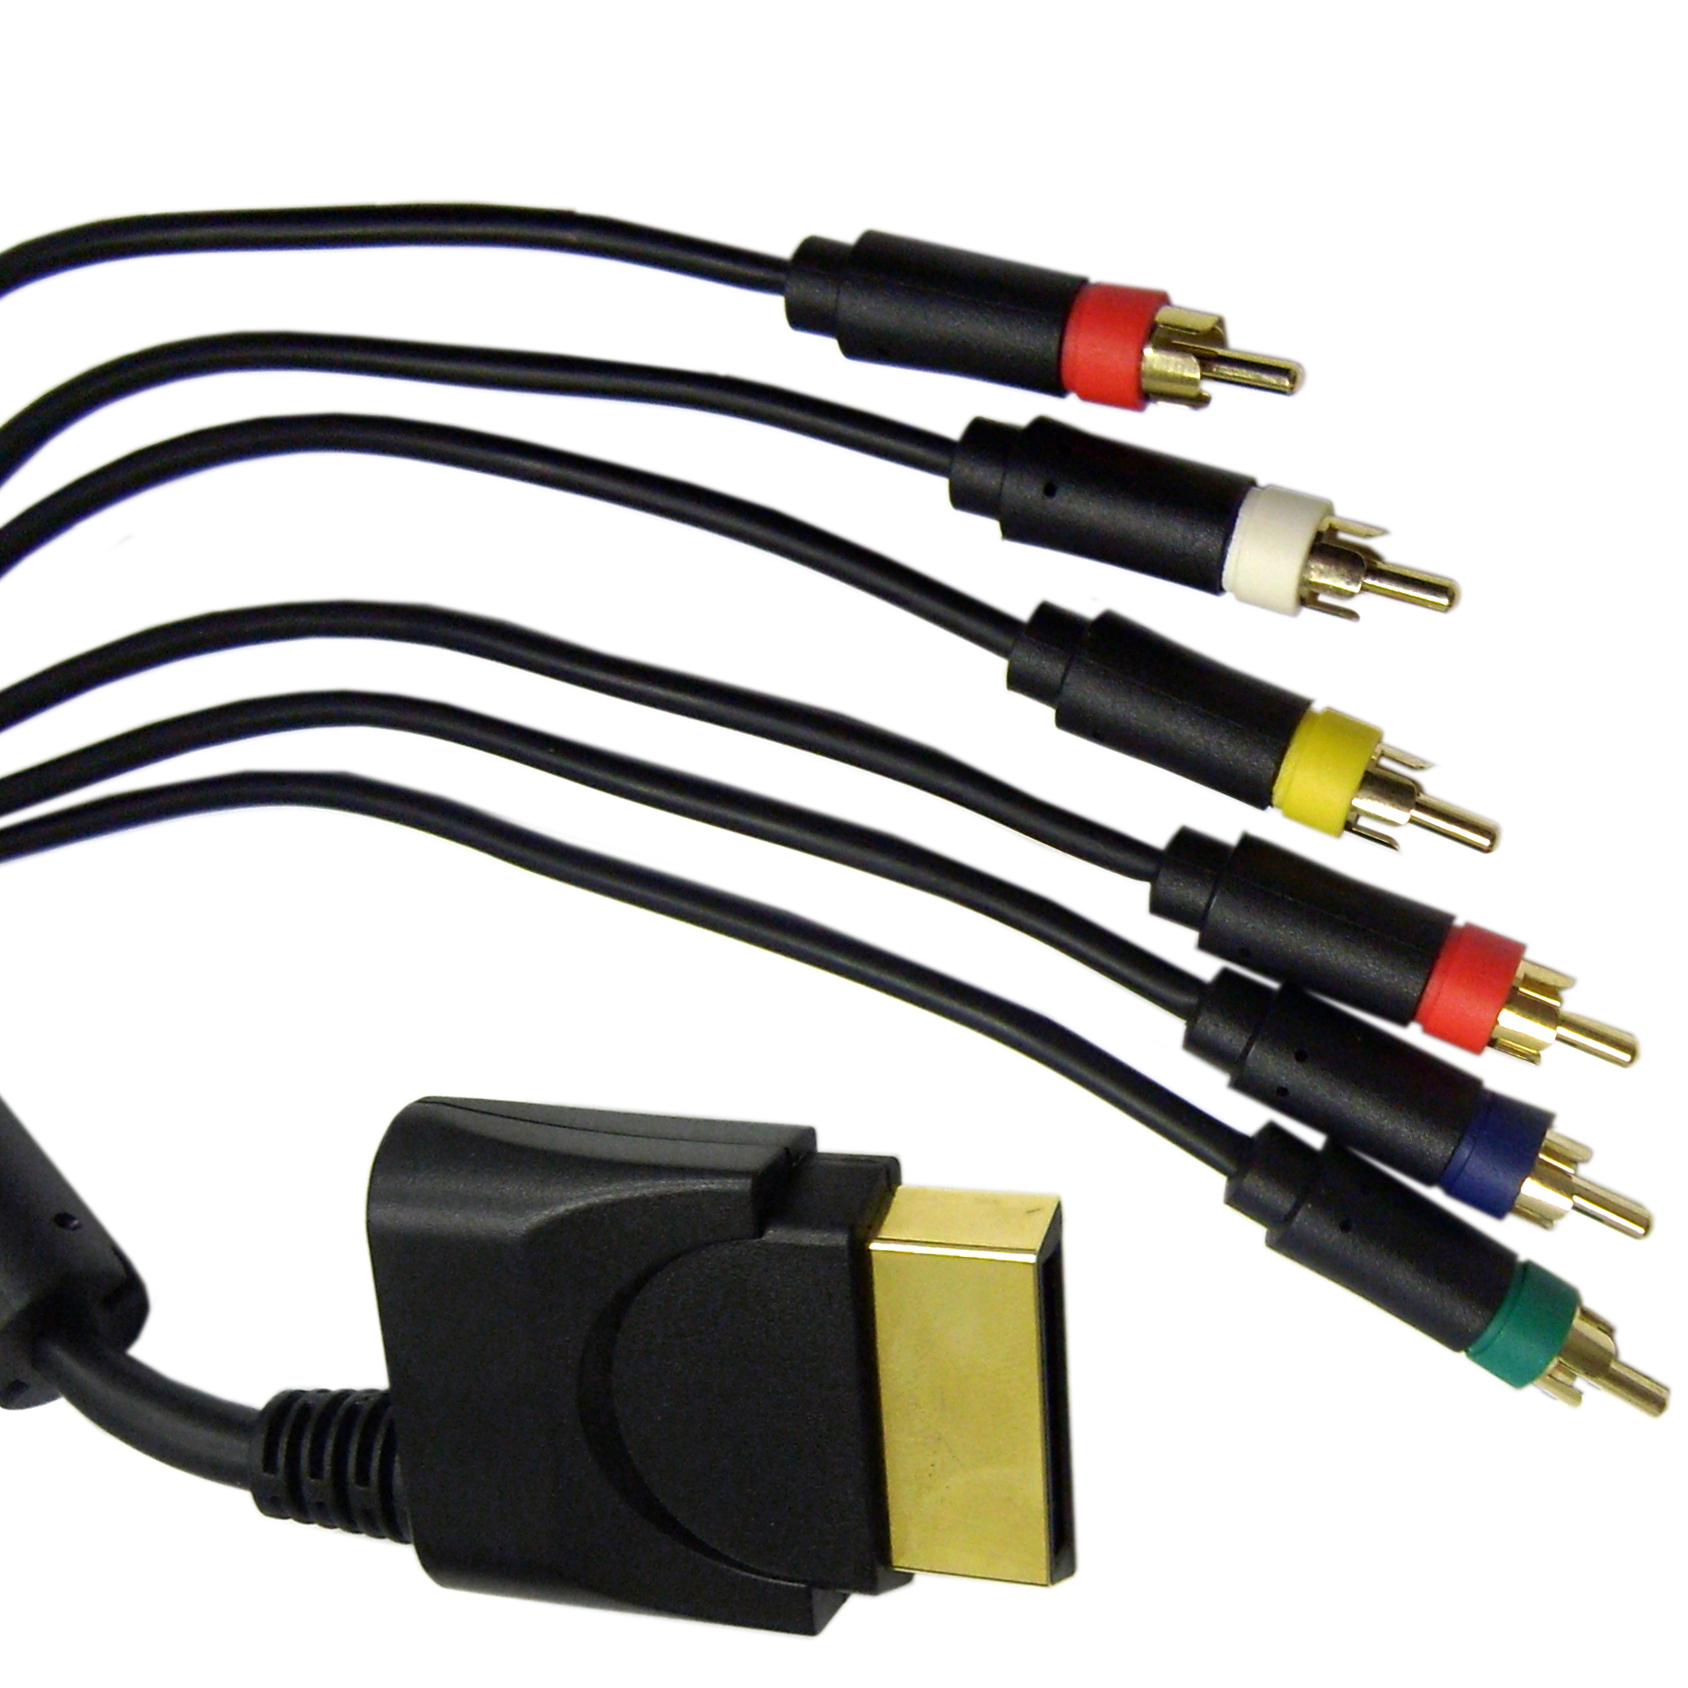 Xbox 360 High Definition Component/Composite A/V Cable, 3 RCA Male (